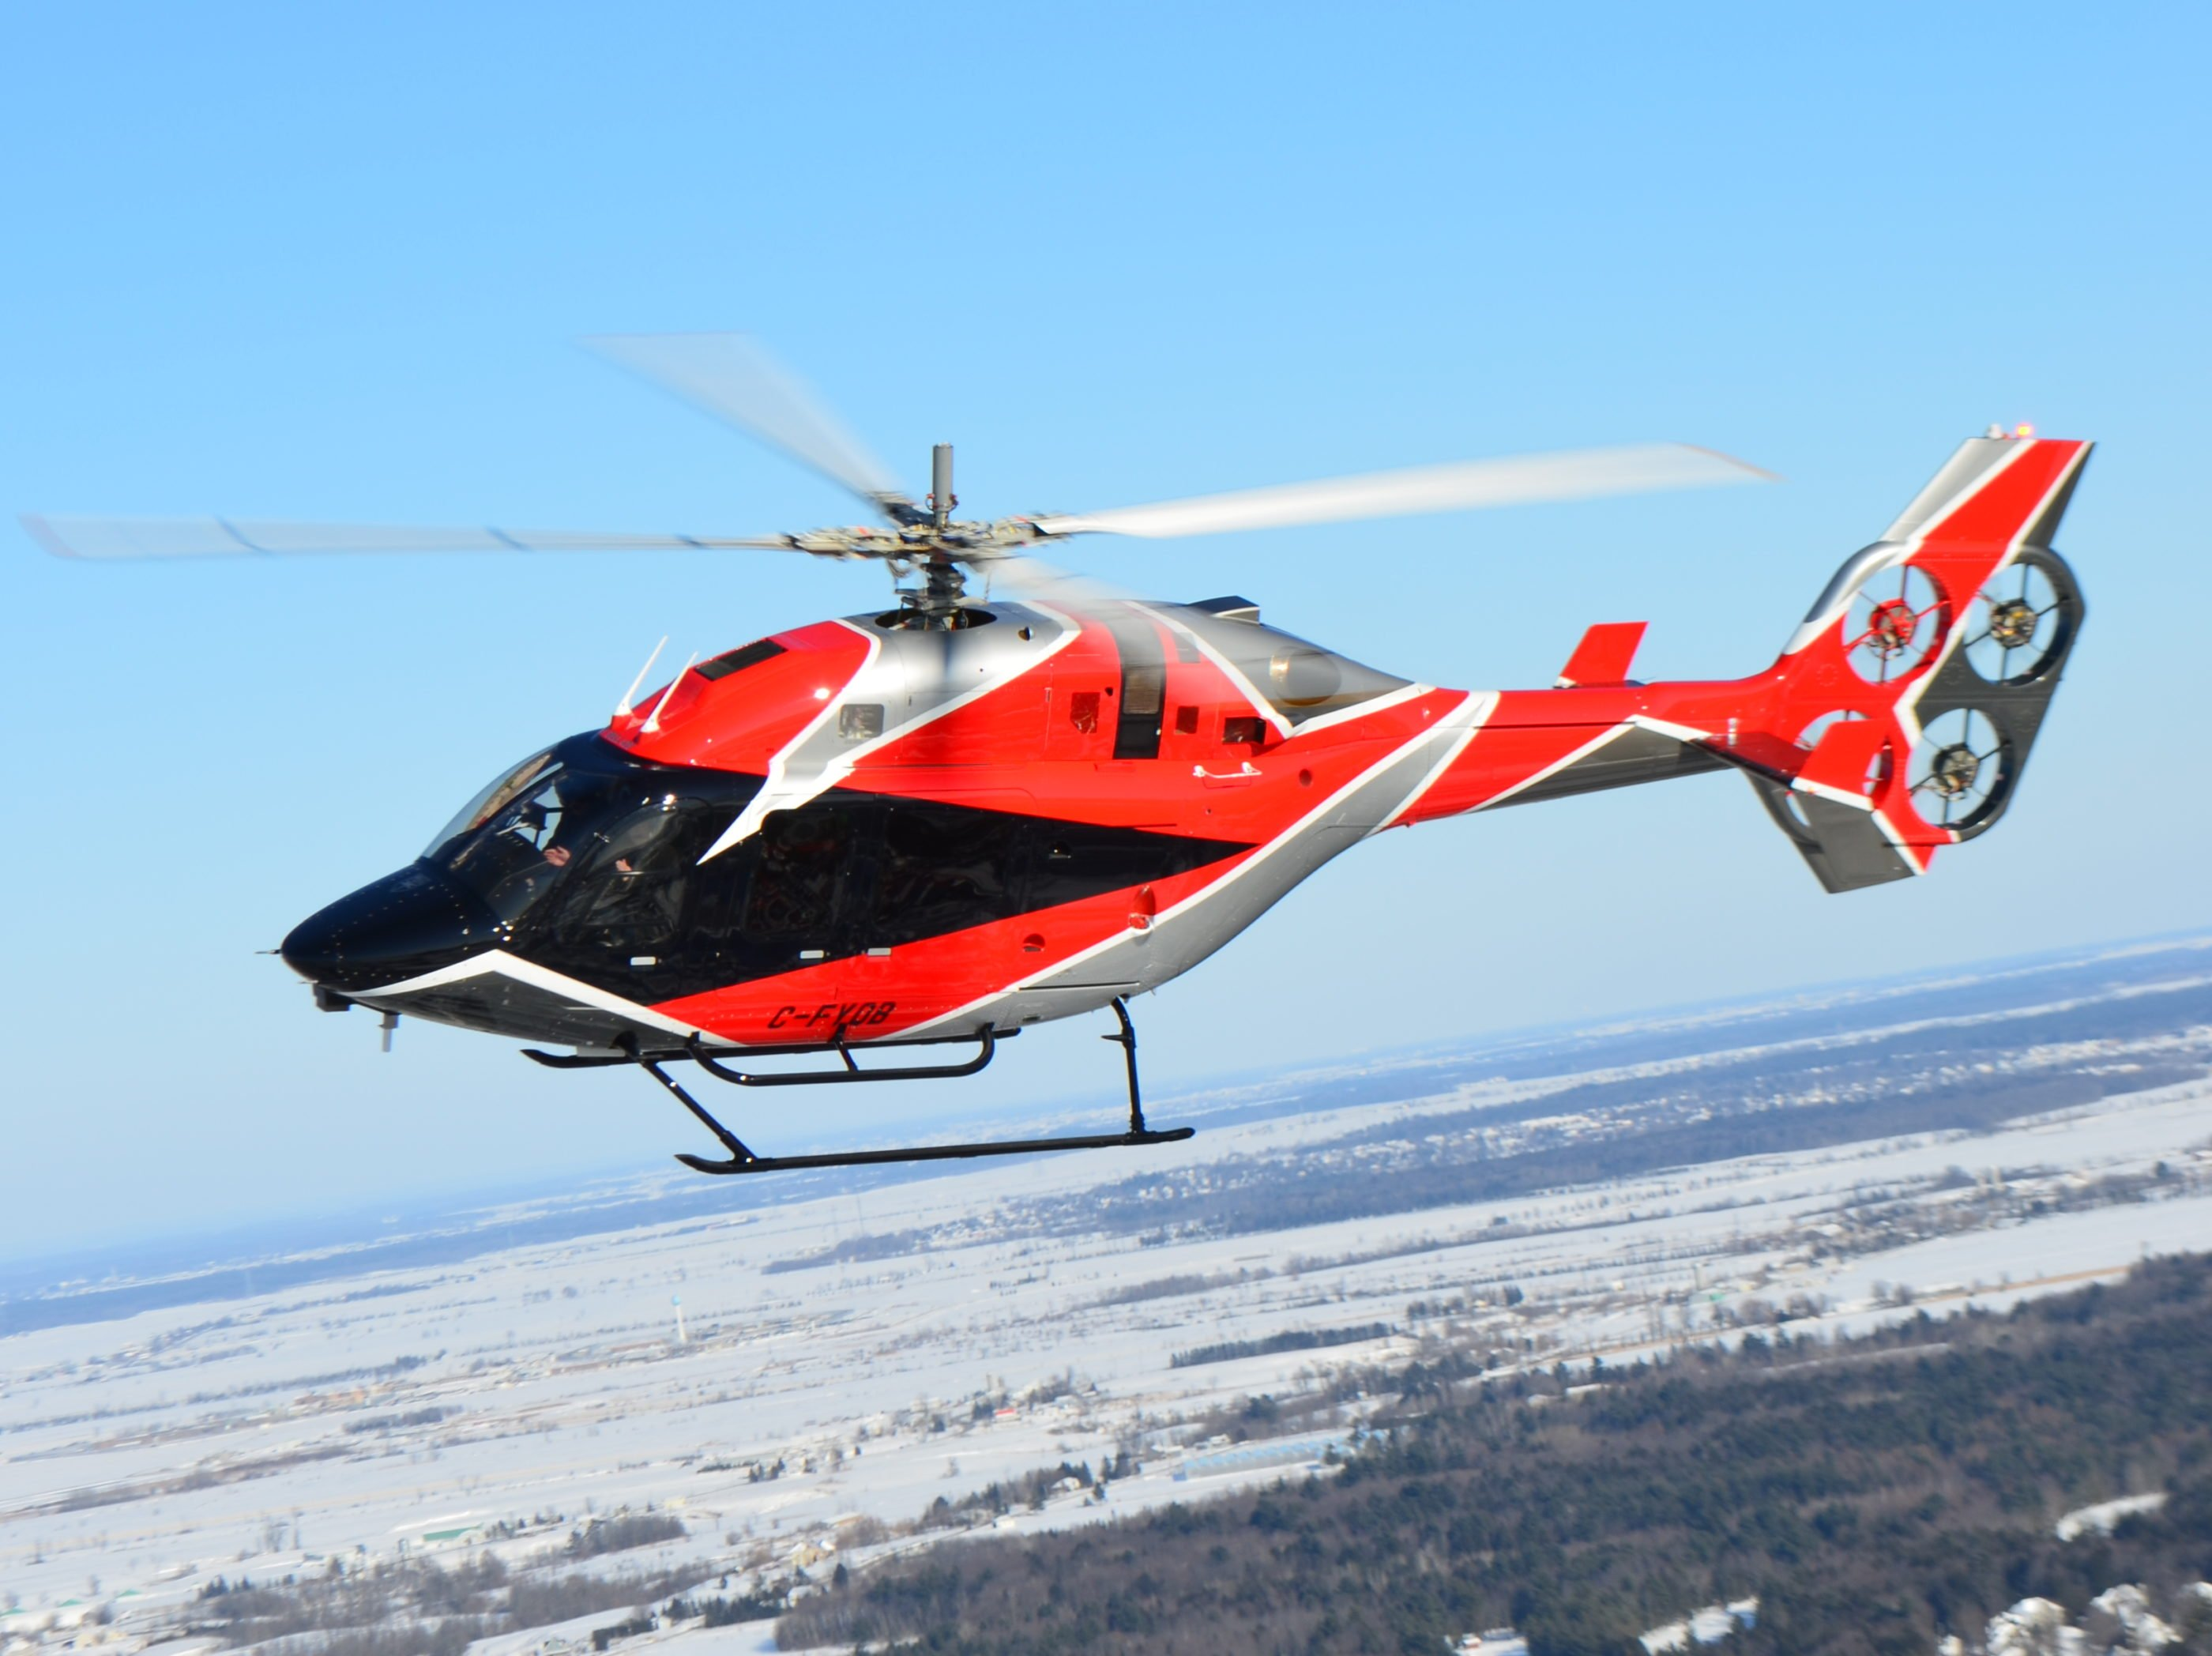 Bell has created an electric helicopter tail rotor system